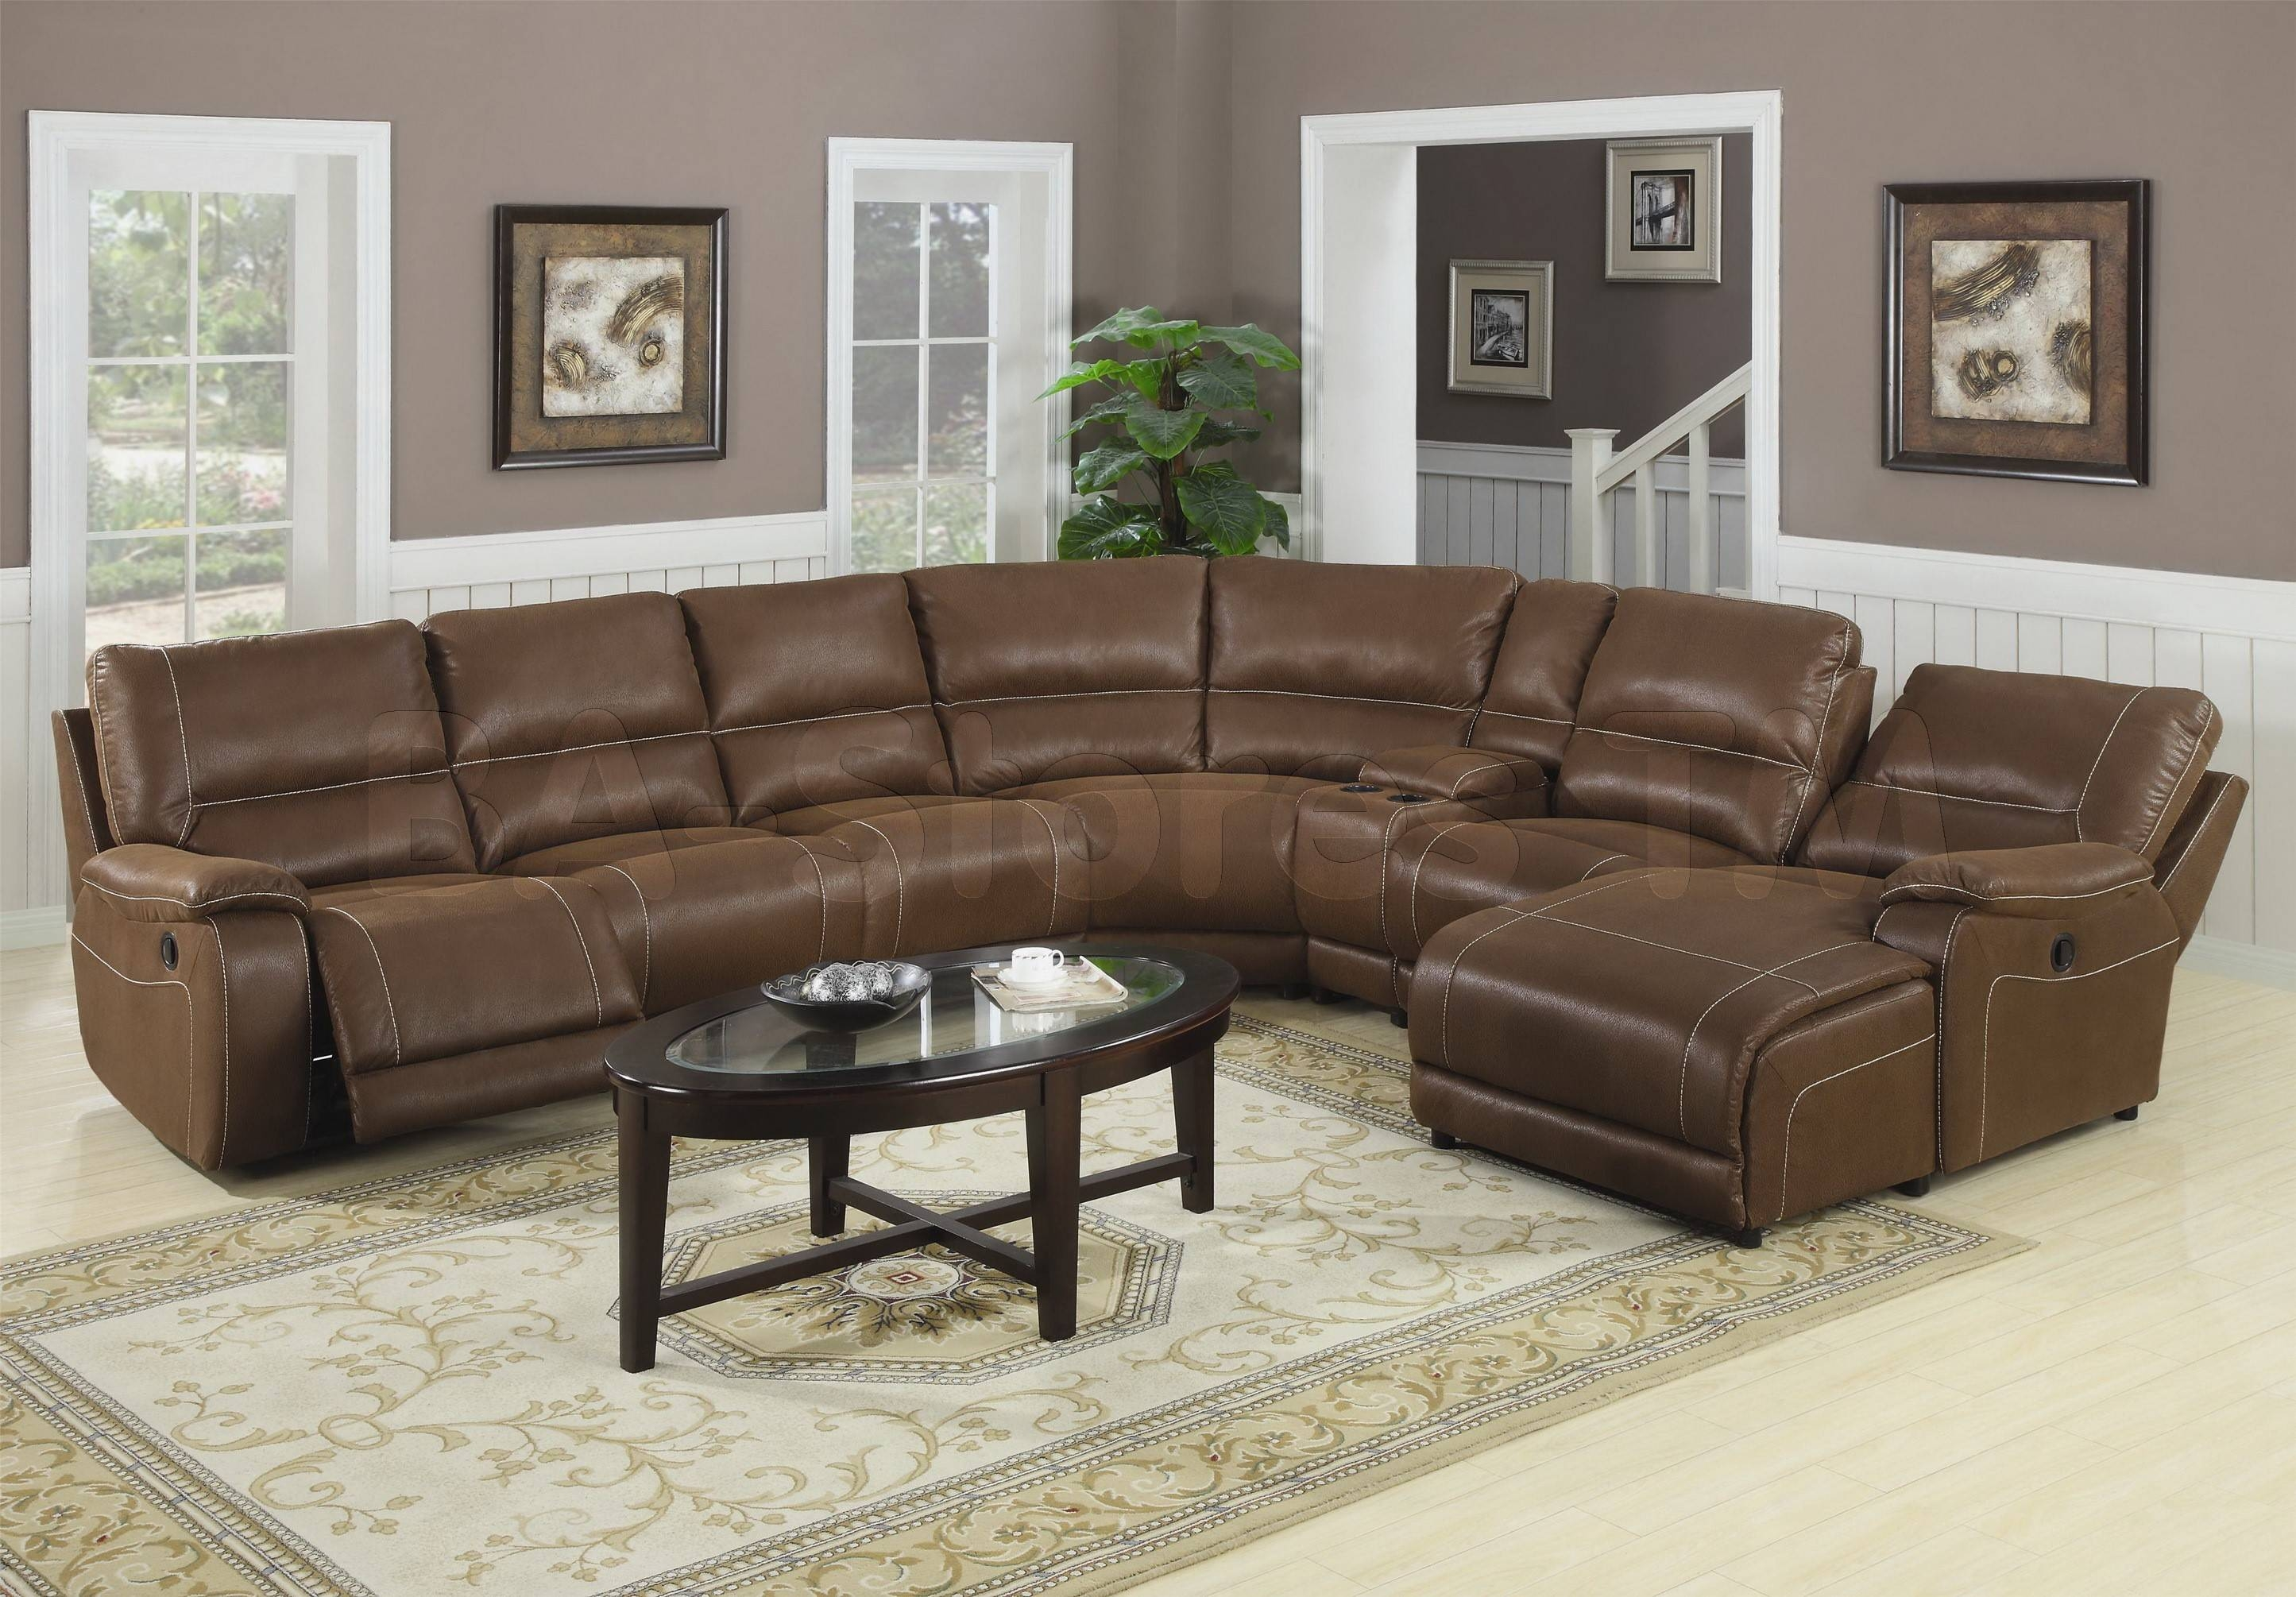 Decorating: Fill Your Home With Comfy Costco Sectionals Sofa For for Berkline Couches (Image 11 of 15)